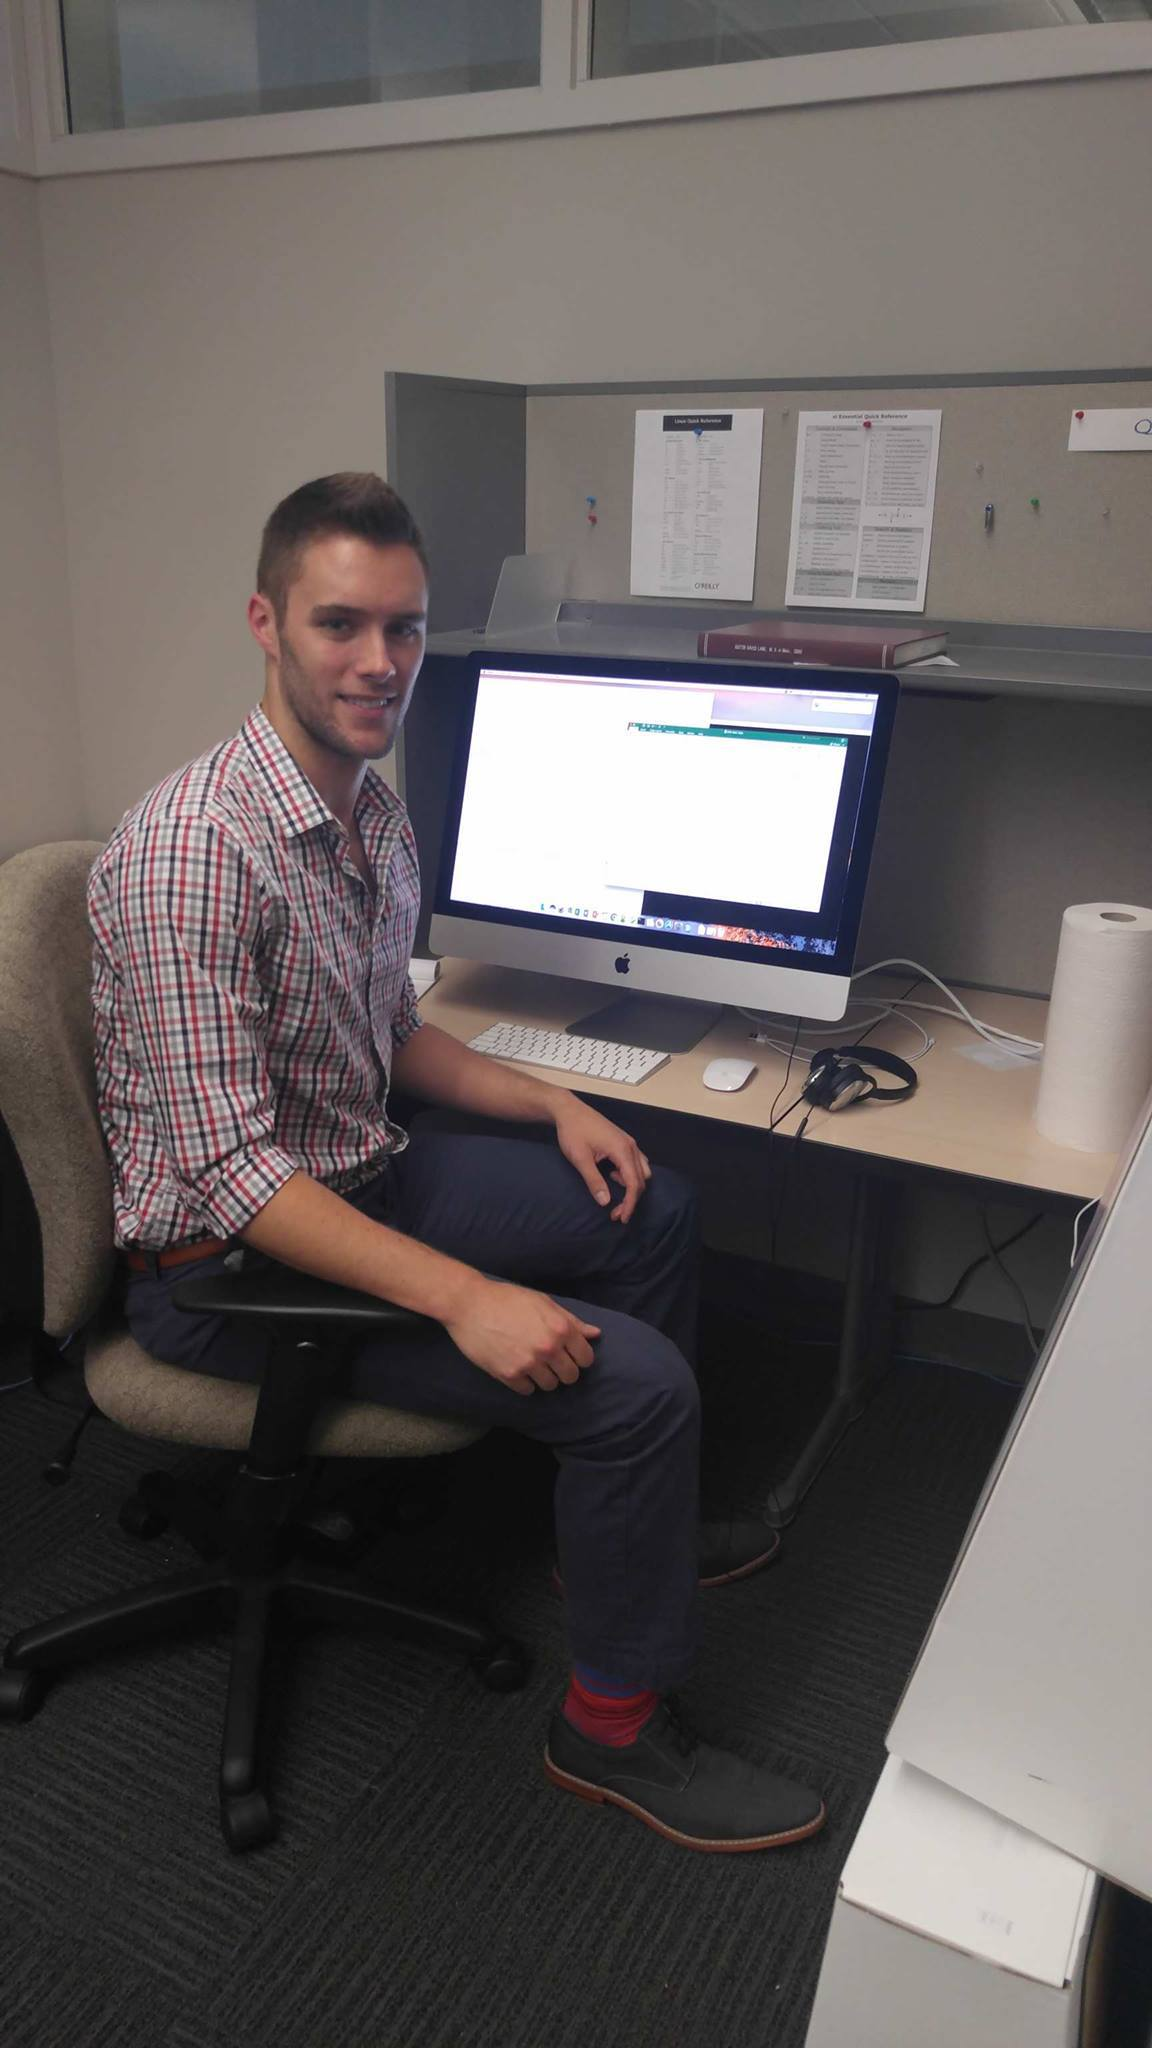 Robert Van Kleeck participated in the Research Experience for Undergraduates (REU) program at the University of Oklahoma where he researched thunderstorm heat bursts.